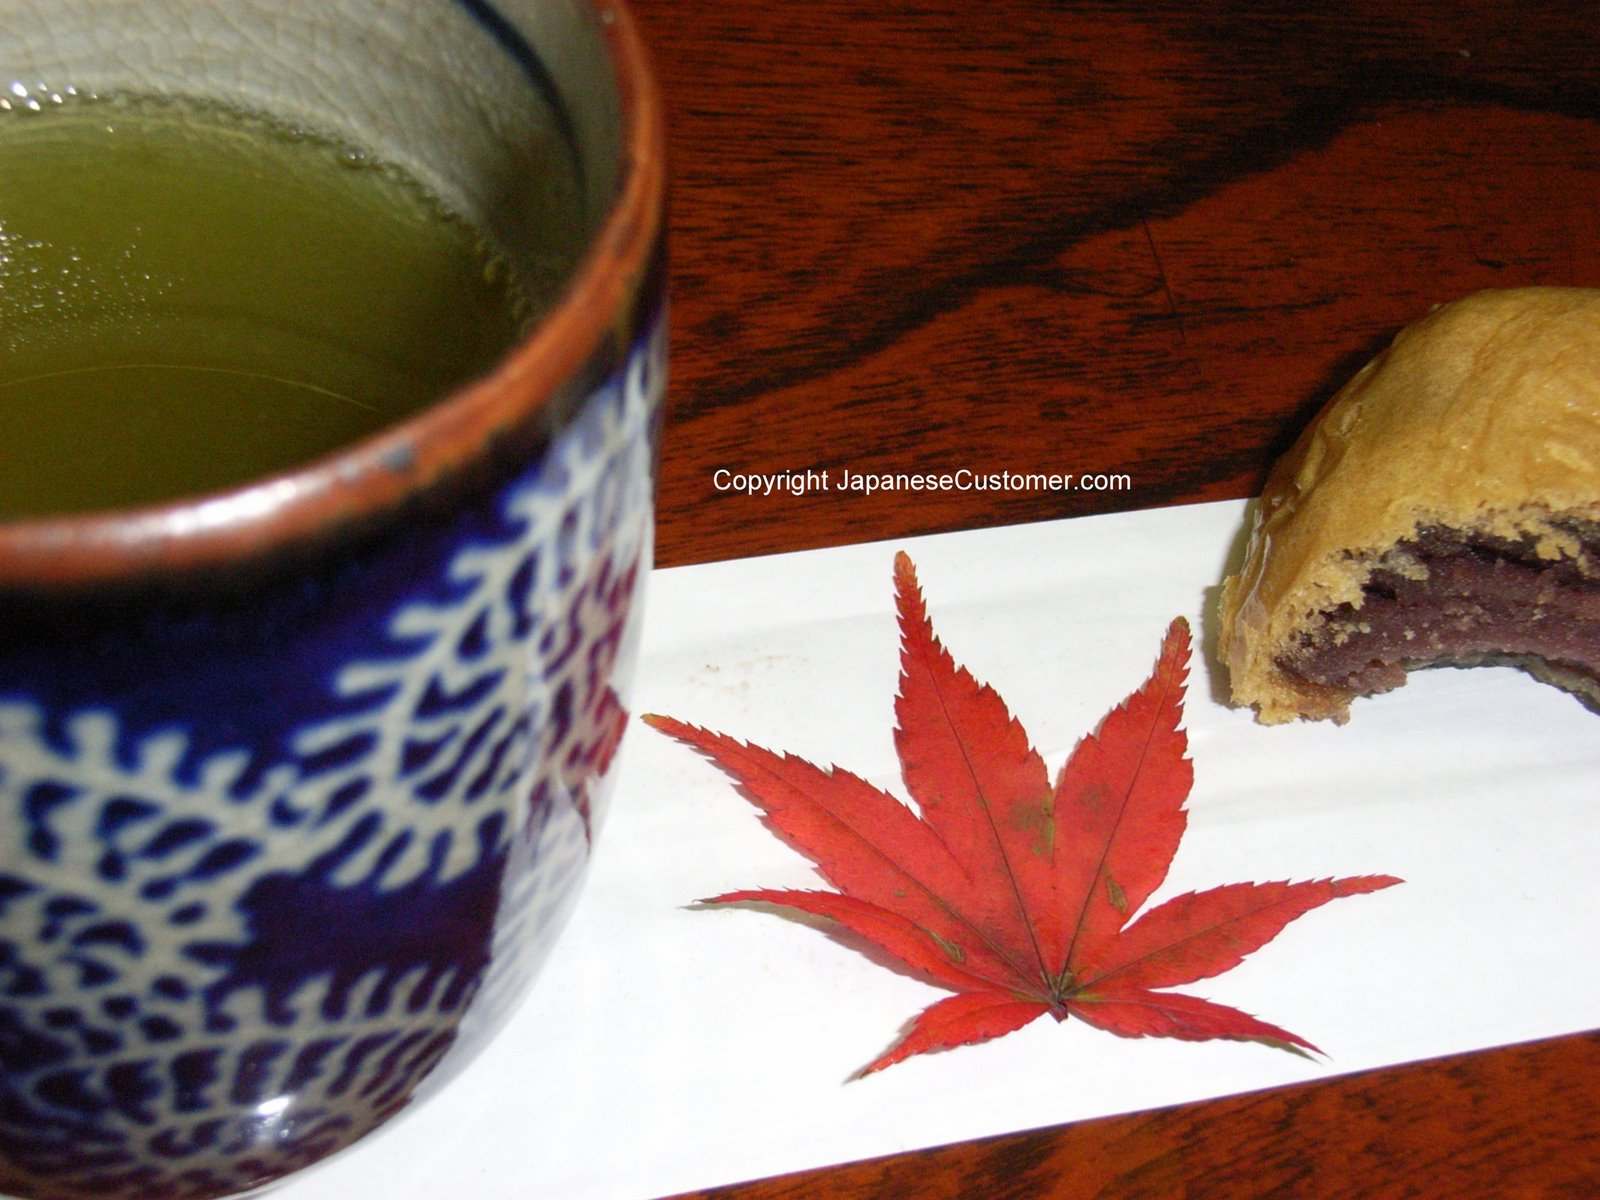 Japanese Green tea with Manju Copyright Peter Hanami 2007 all rights reserved